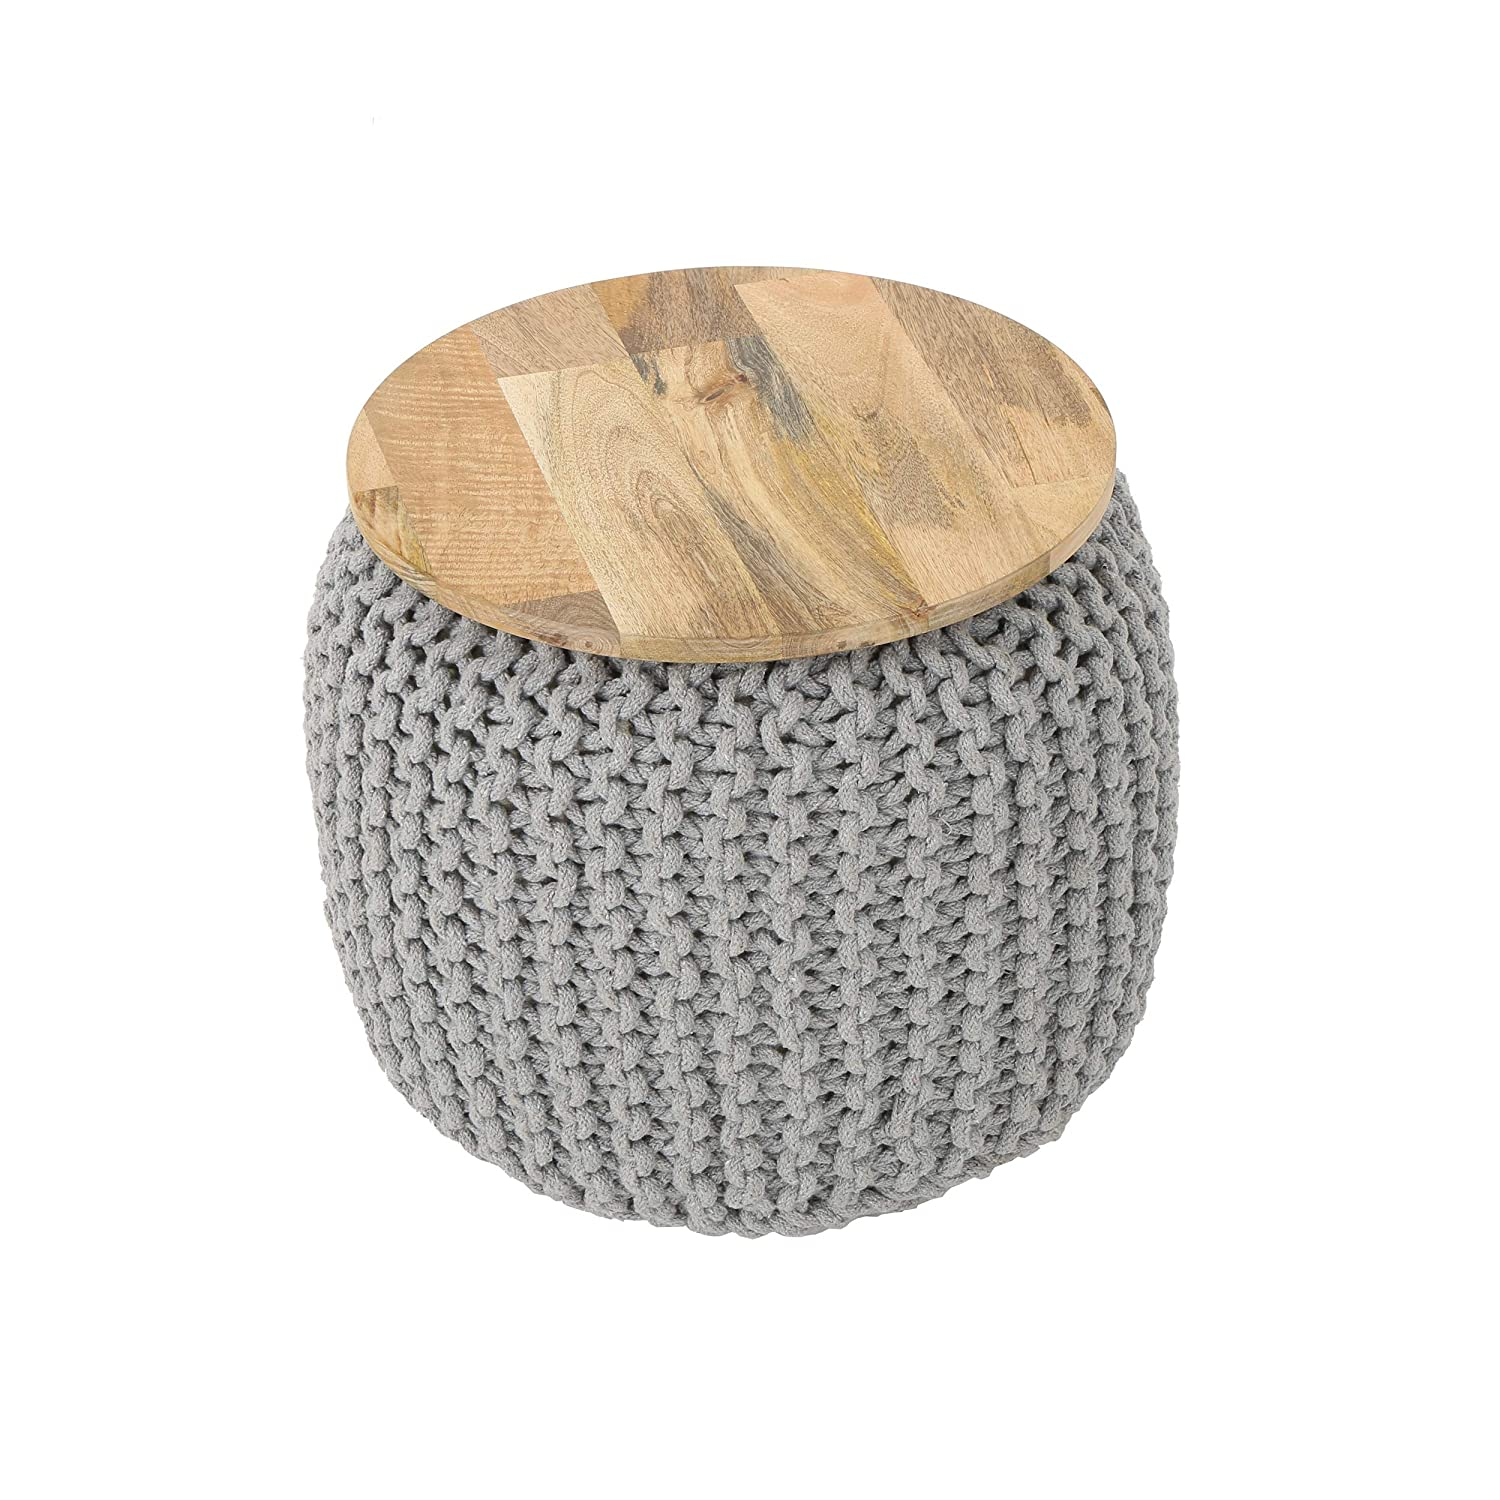 Great Deal Furniture 305063 Vivan Boho Knitted Ottoman, Gray, Natural